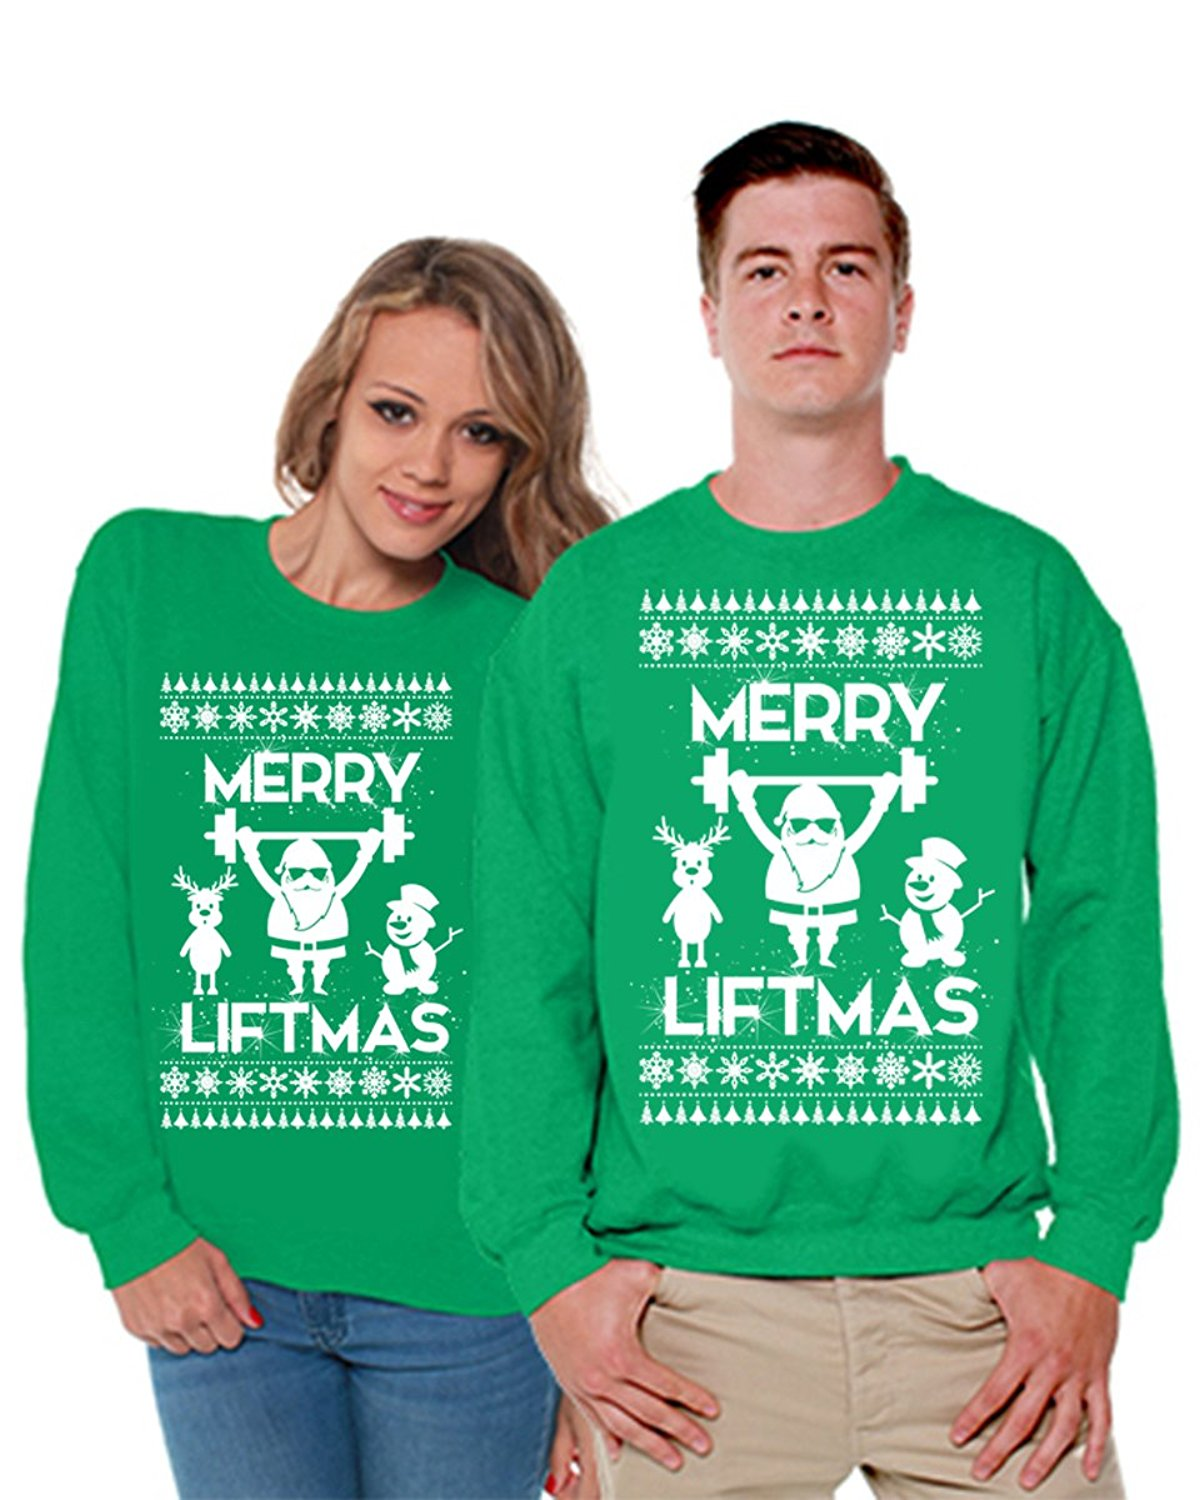 d2fd3ceb0 Get Quotations · Awkward Styles Merry Liftmas Ugly Christmas Sweater  Christmas Matching Couples Sweater Couples Gifts